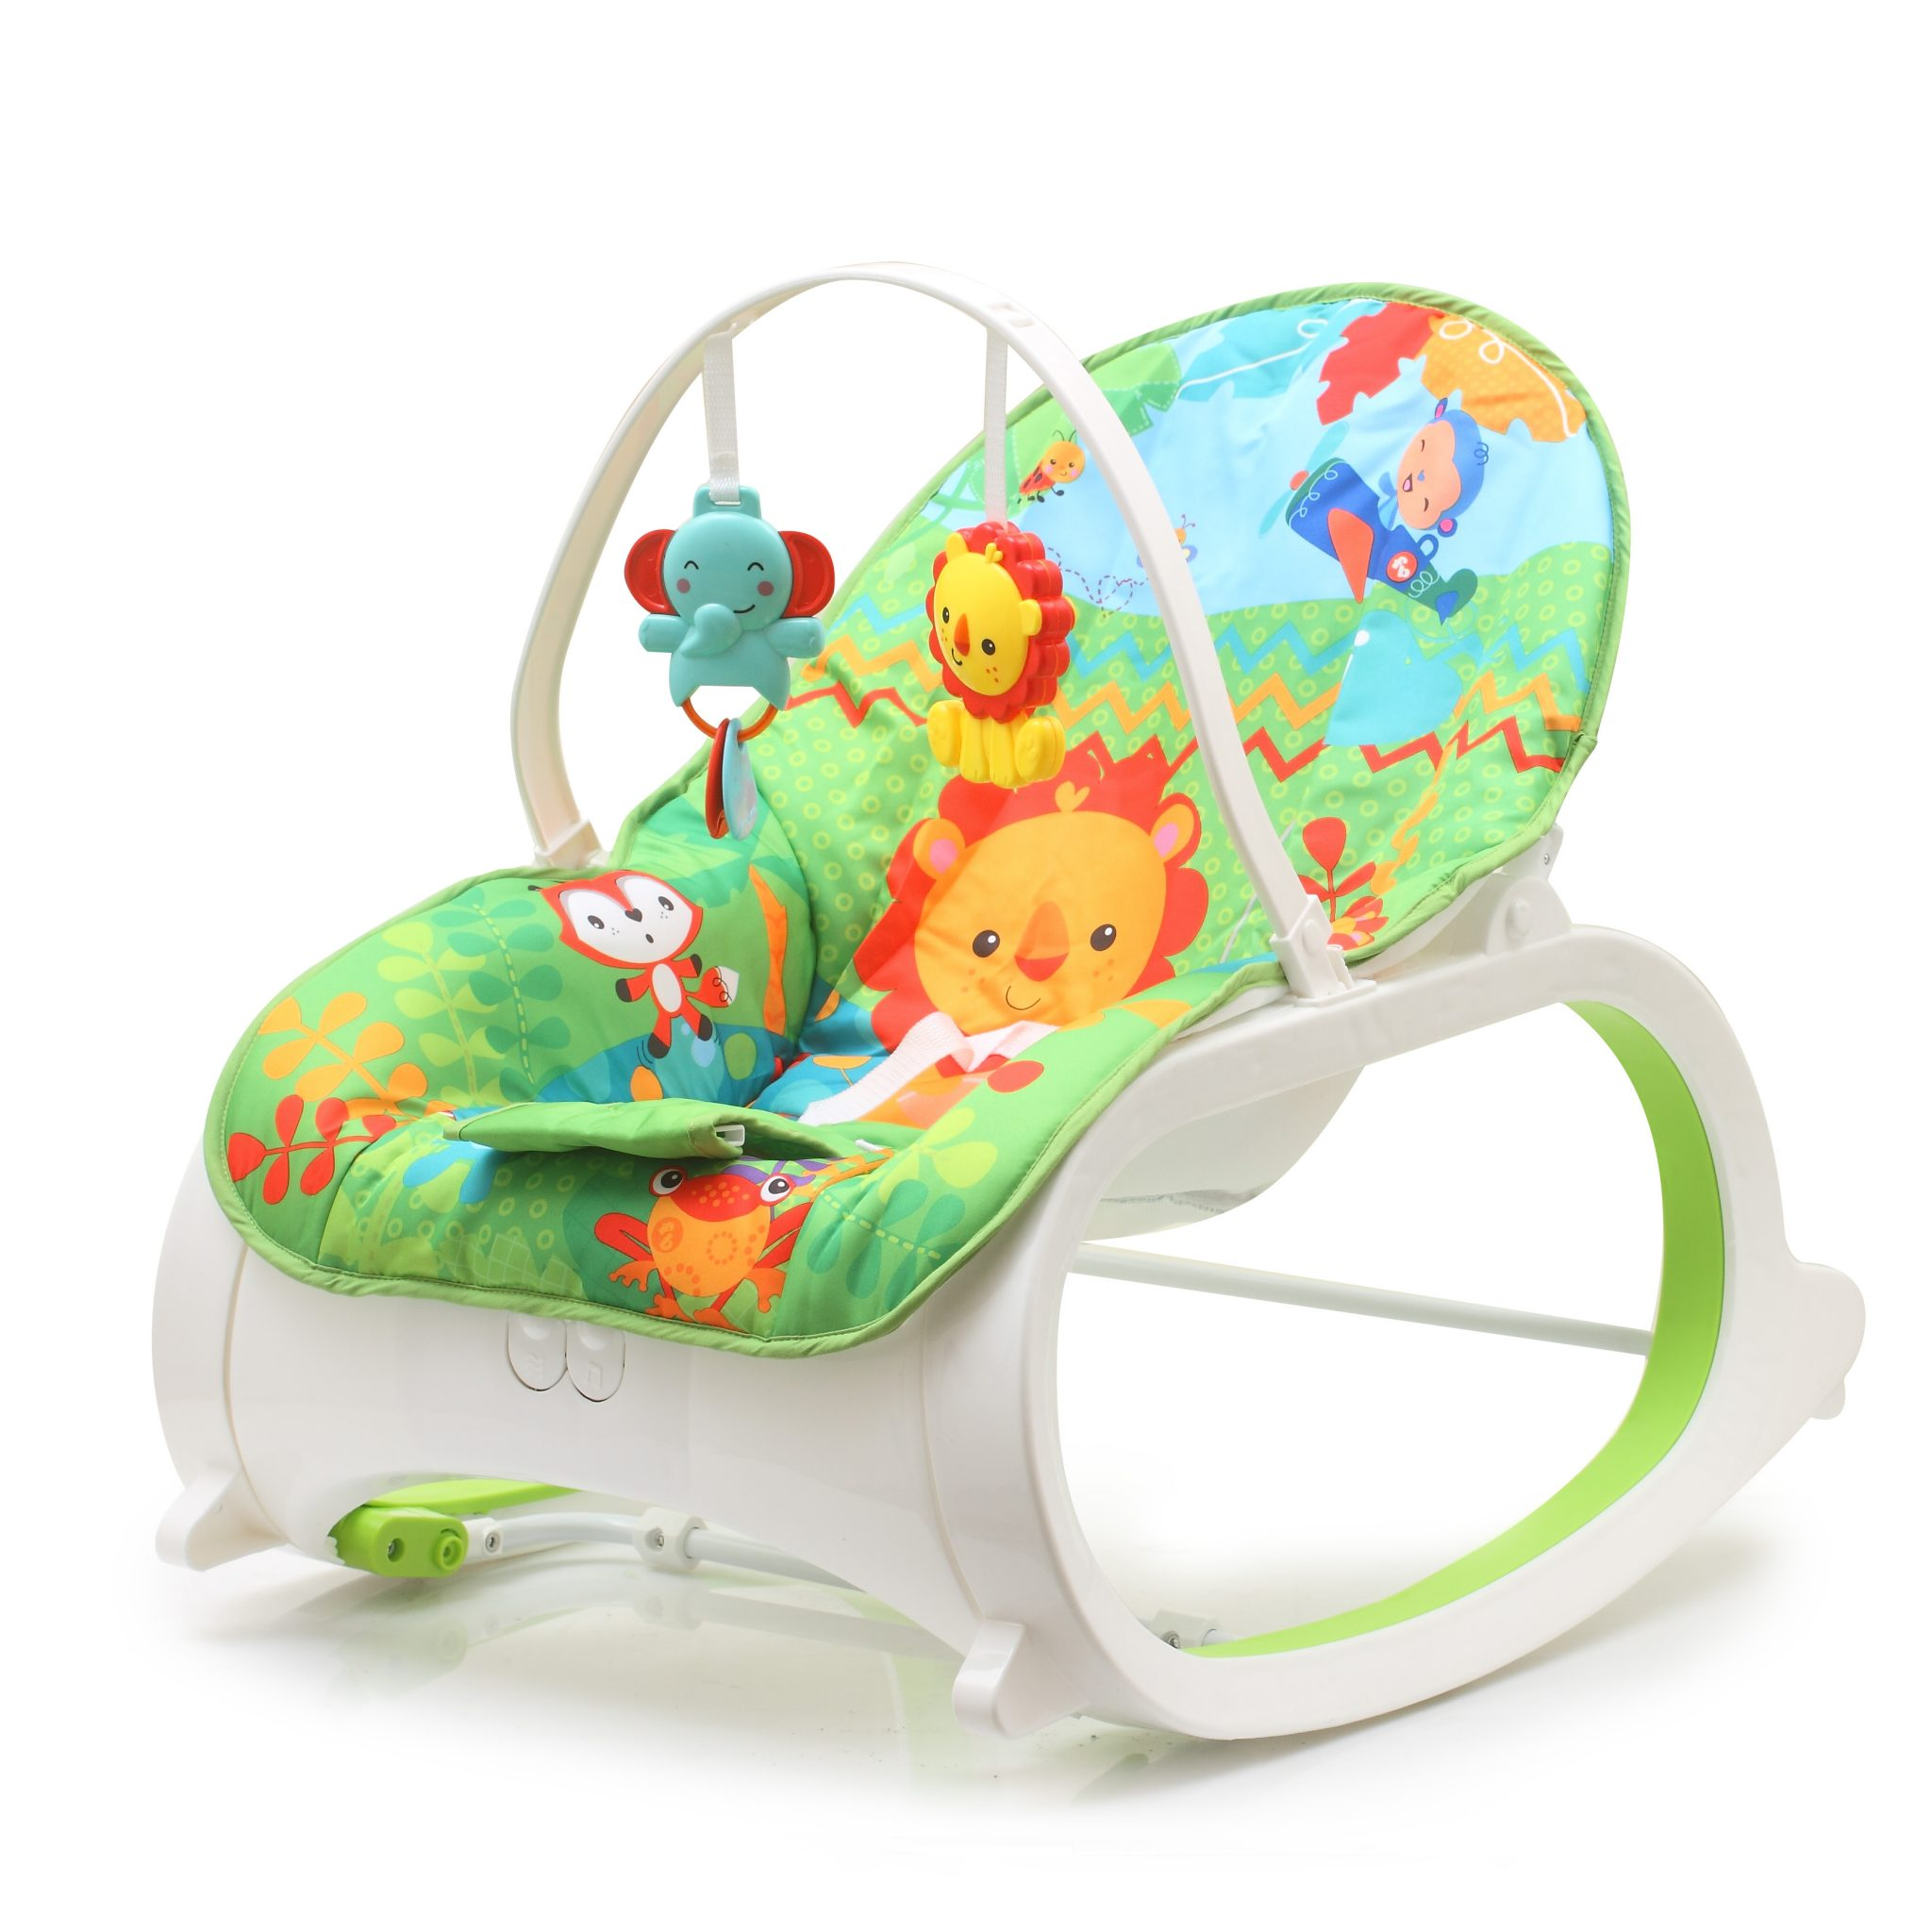 Developmental Baby Toys By Ages and Stages